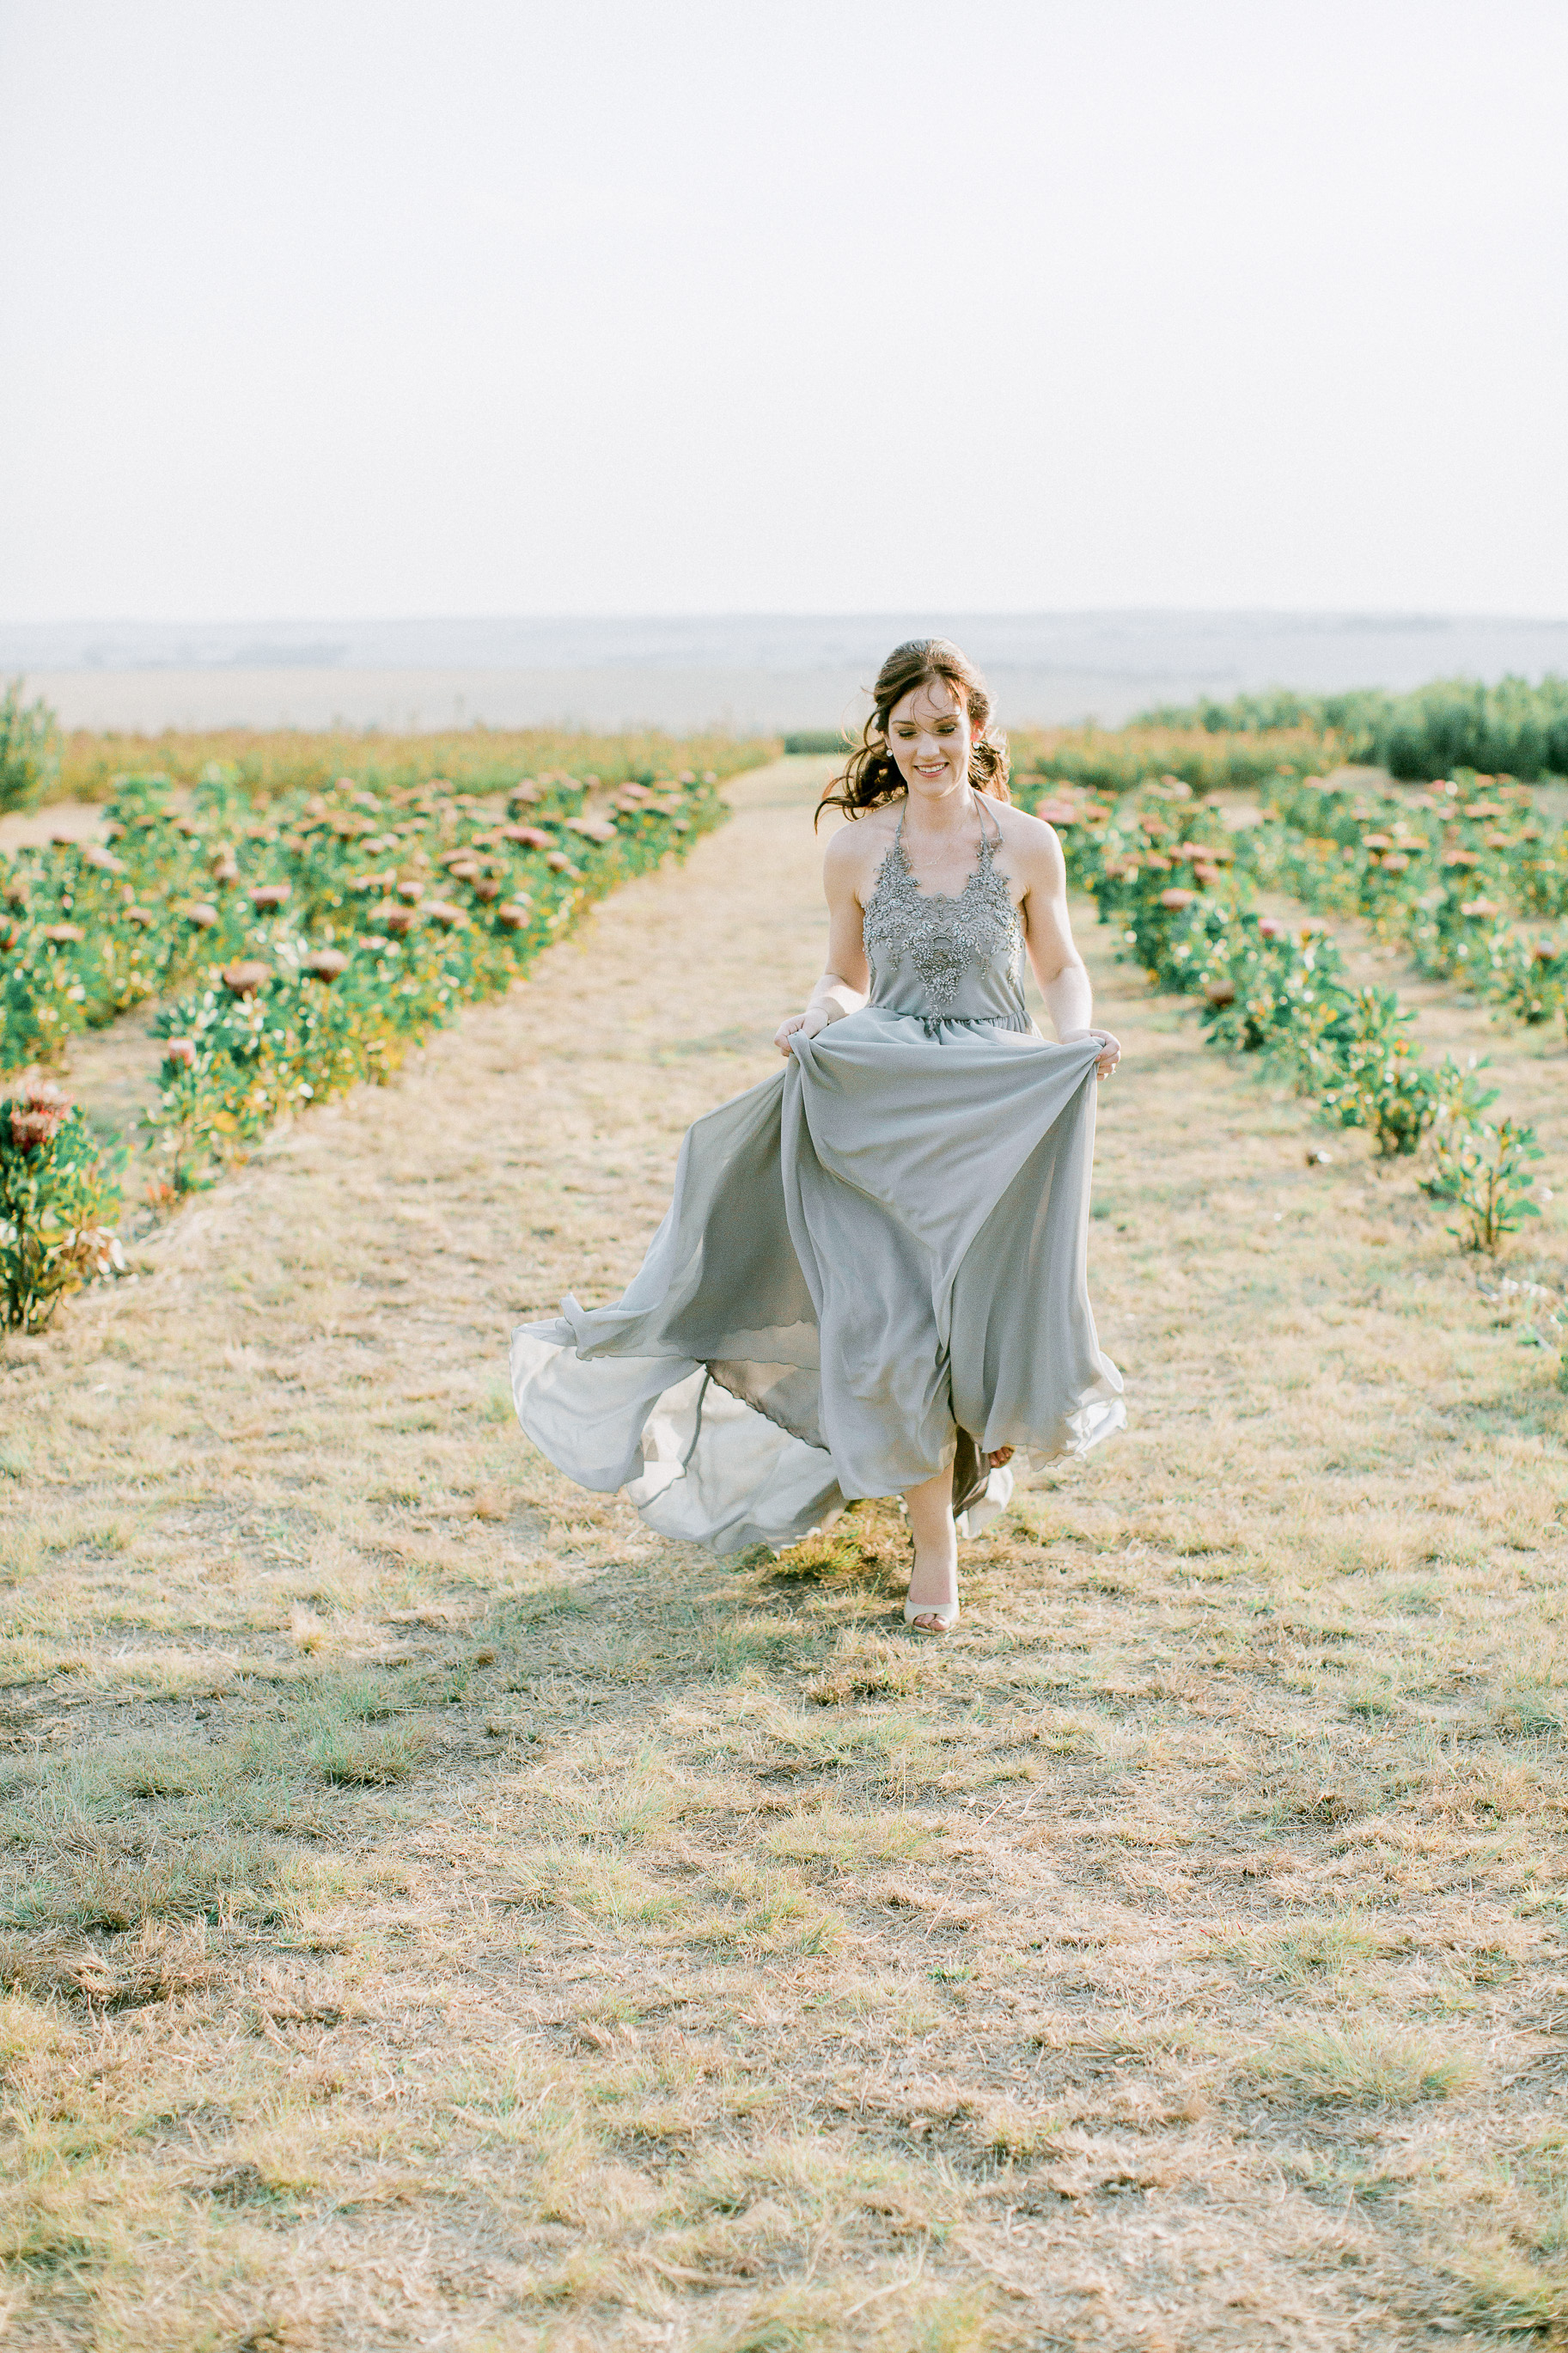 South africa wedding photographer clareece smit photography50.jpg